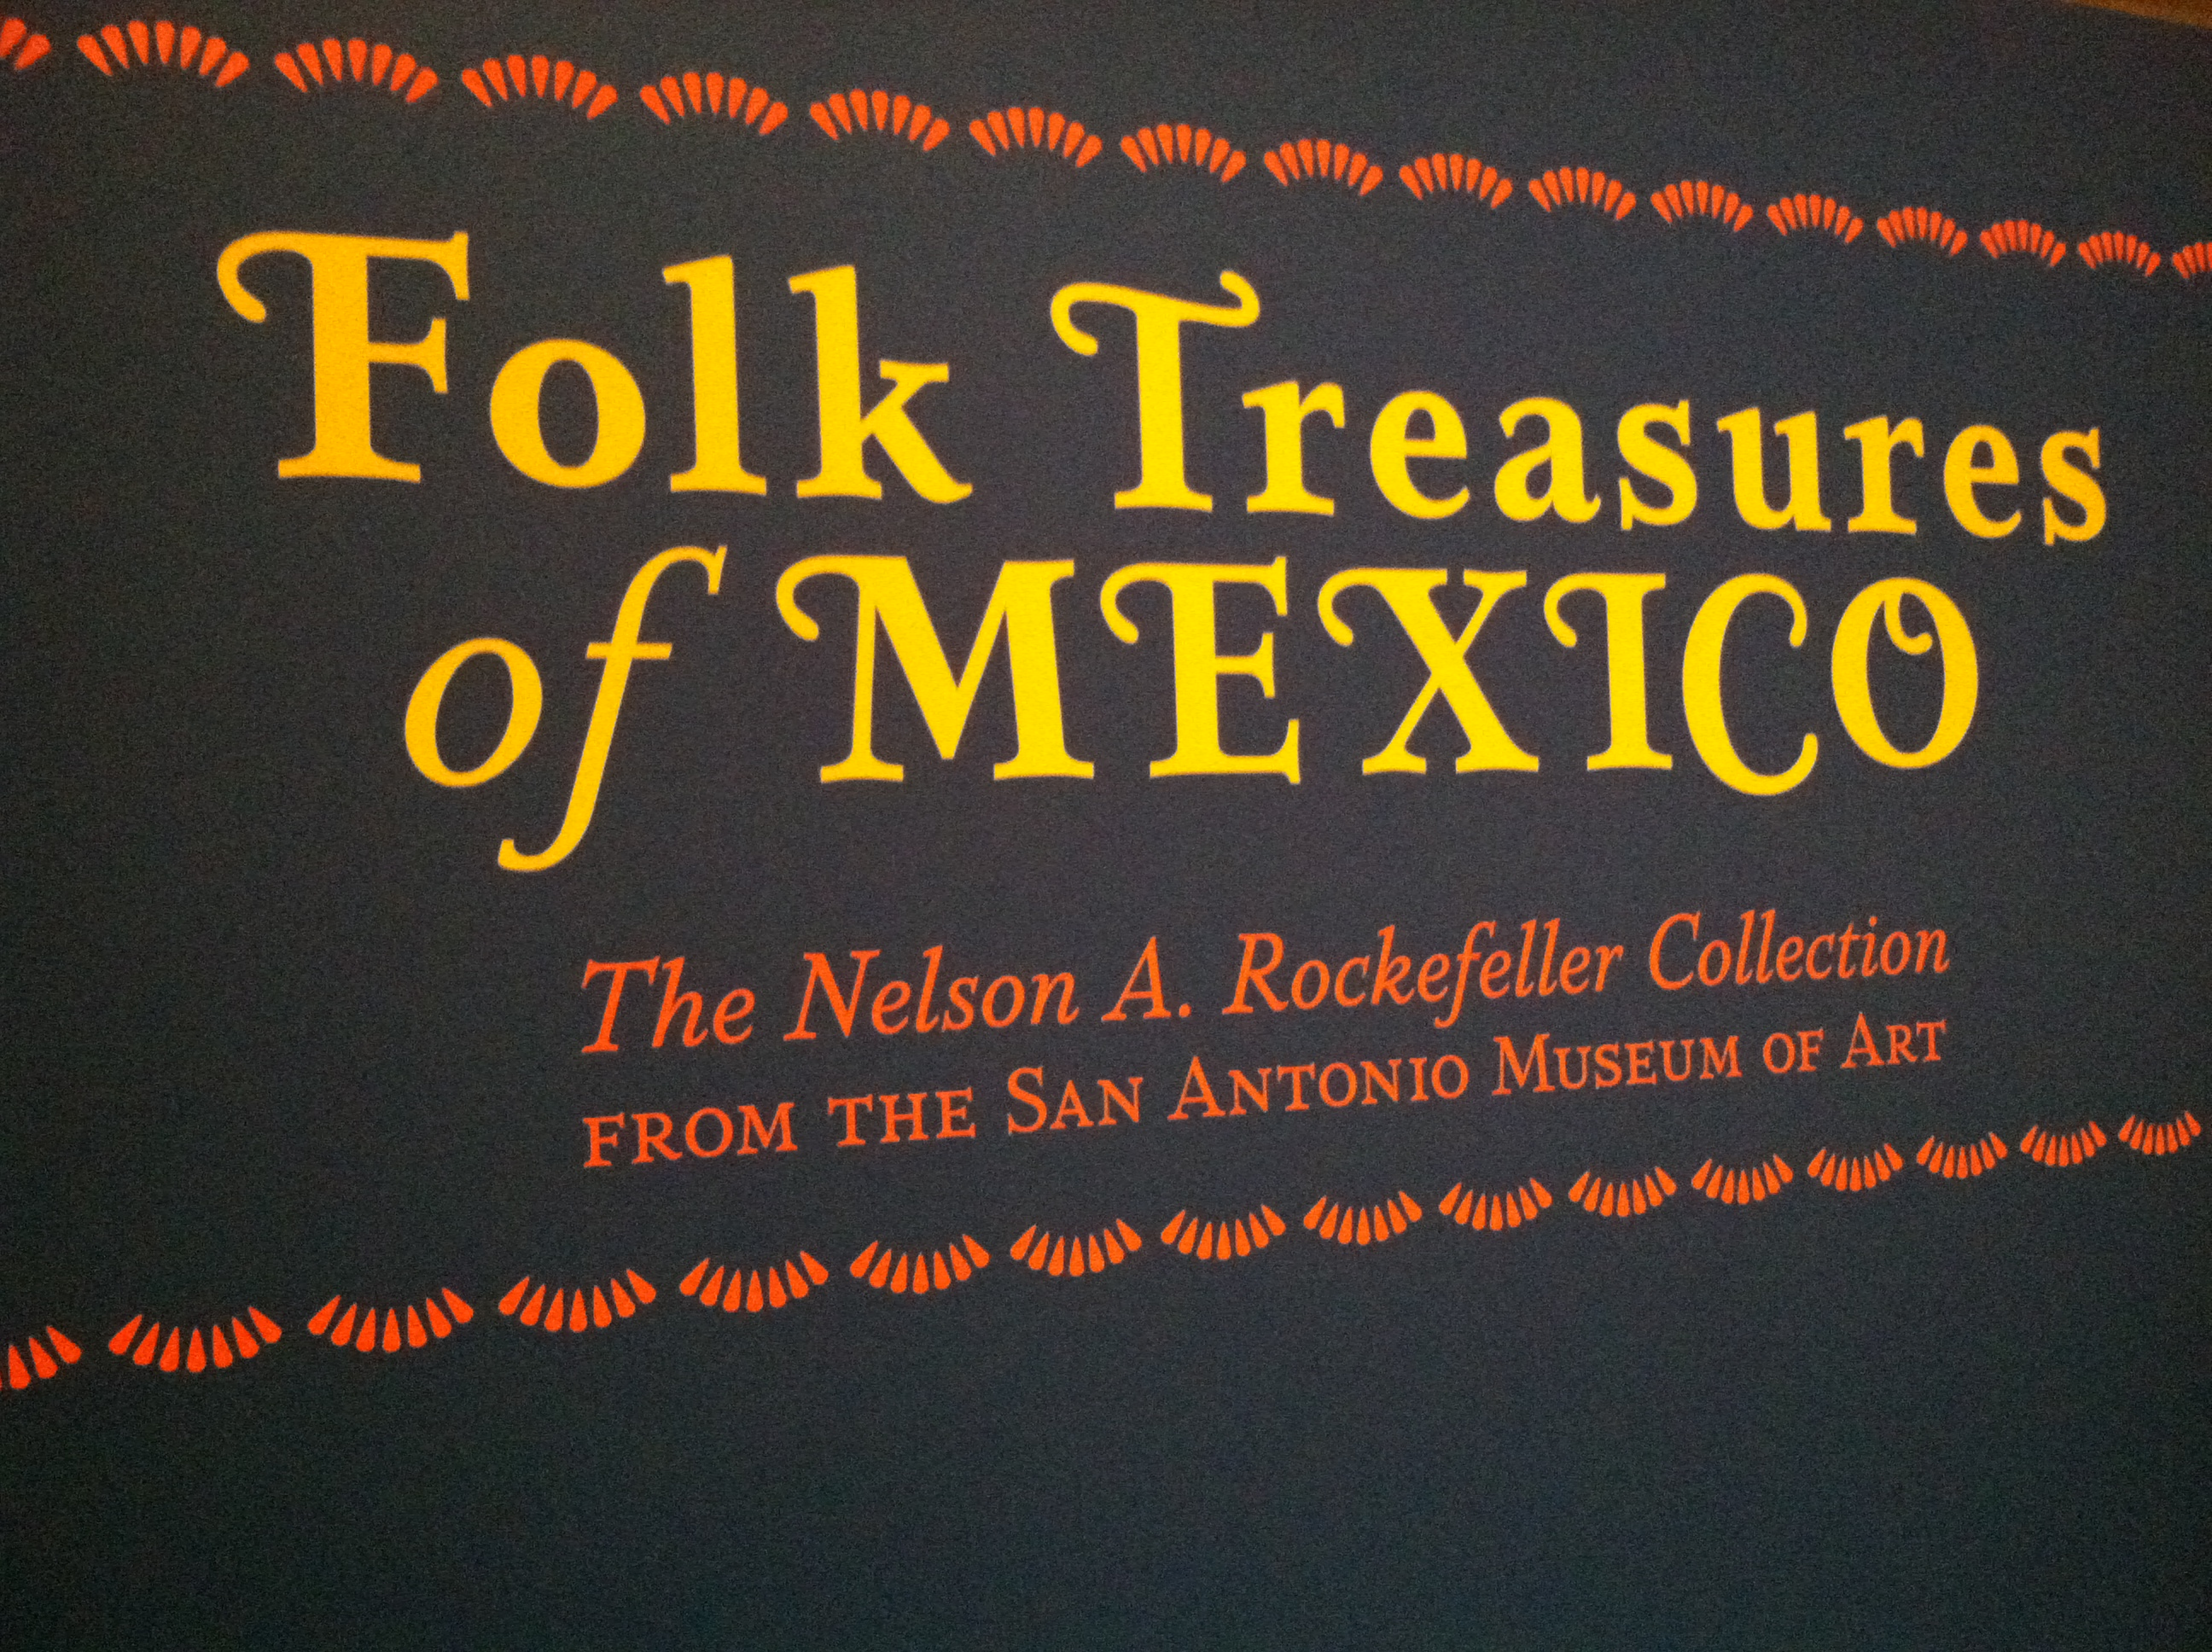 Tacoma Art Museum: Folk Treasures of Mexico